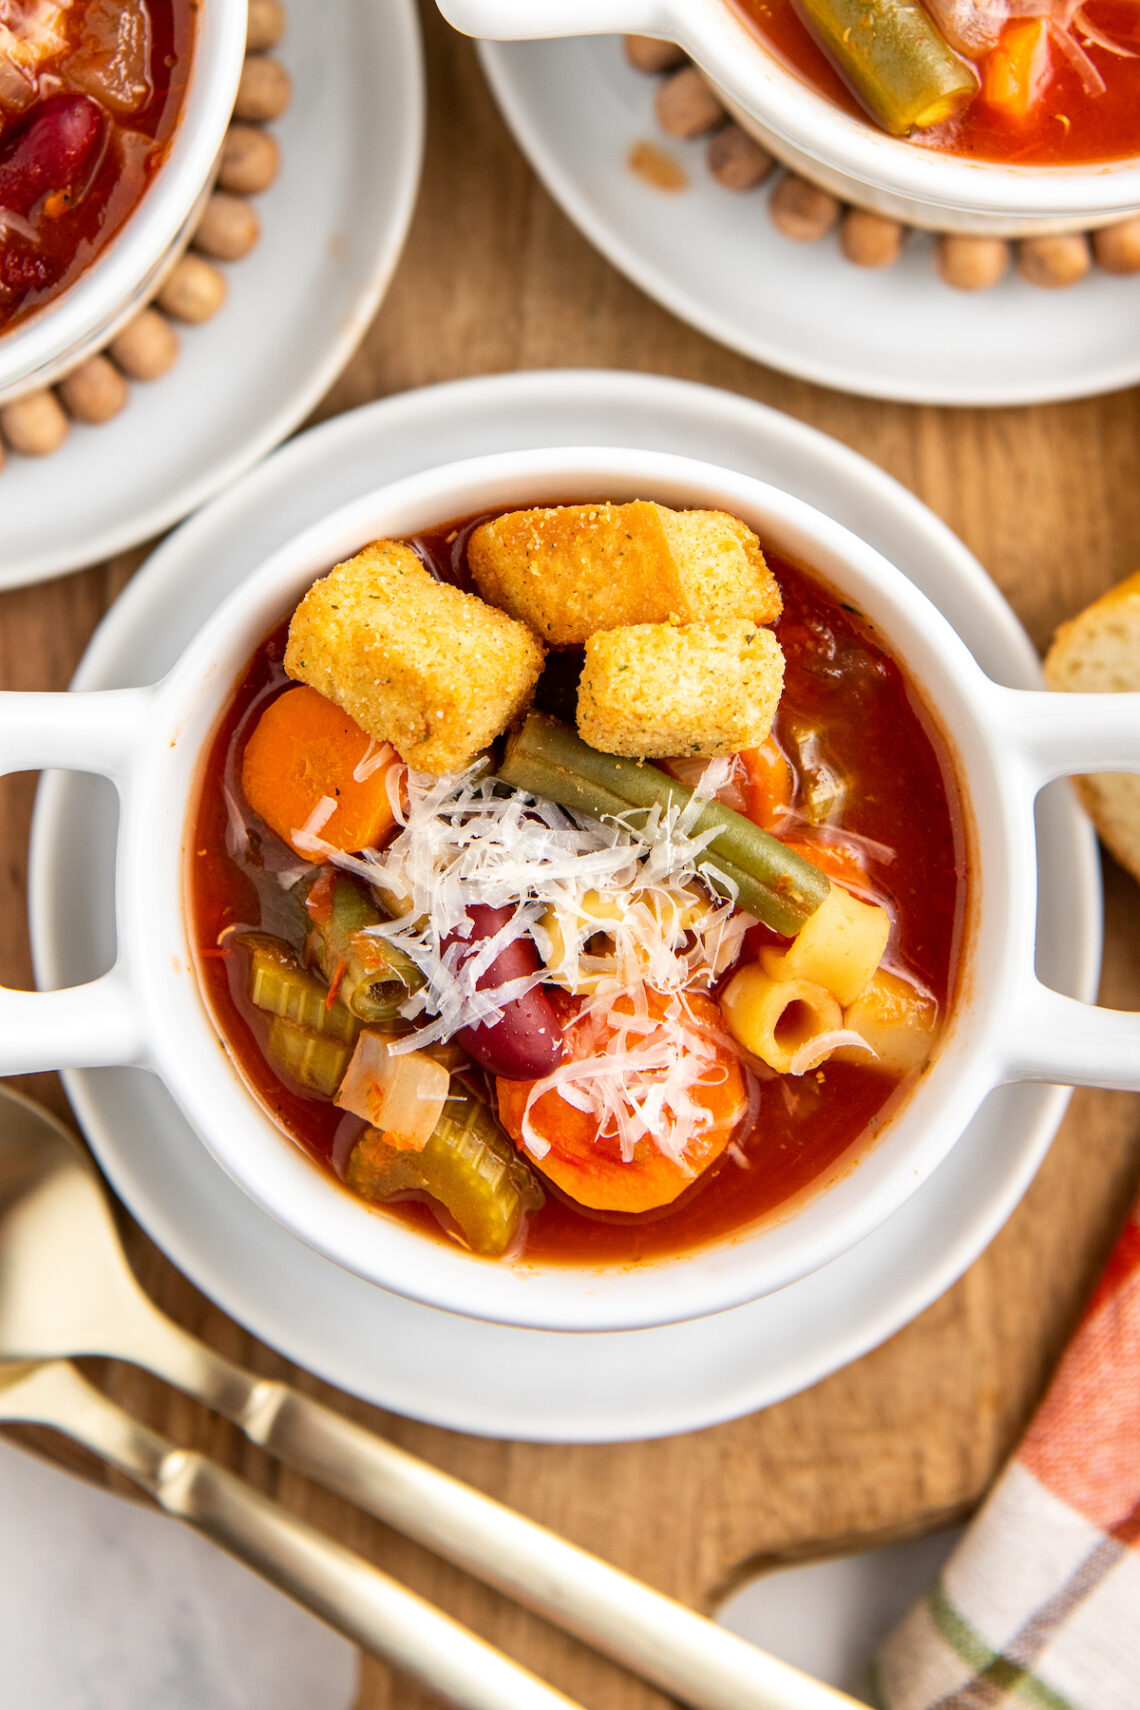 Up close image of minestrone soup in a white bowl with parmesan cheese and croutons on top.